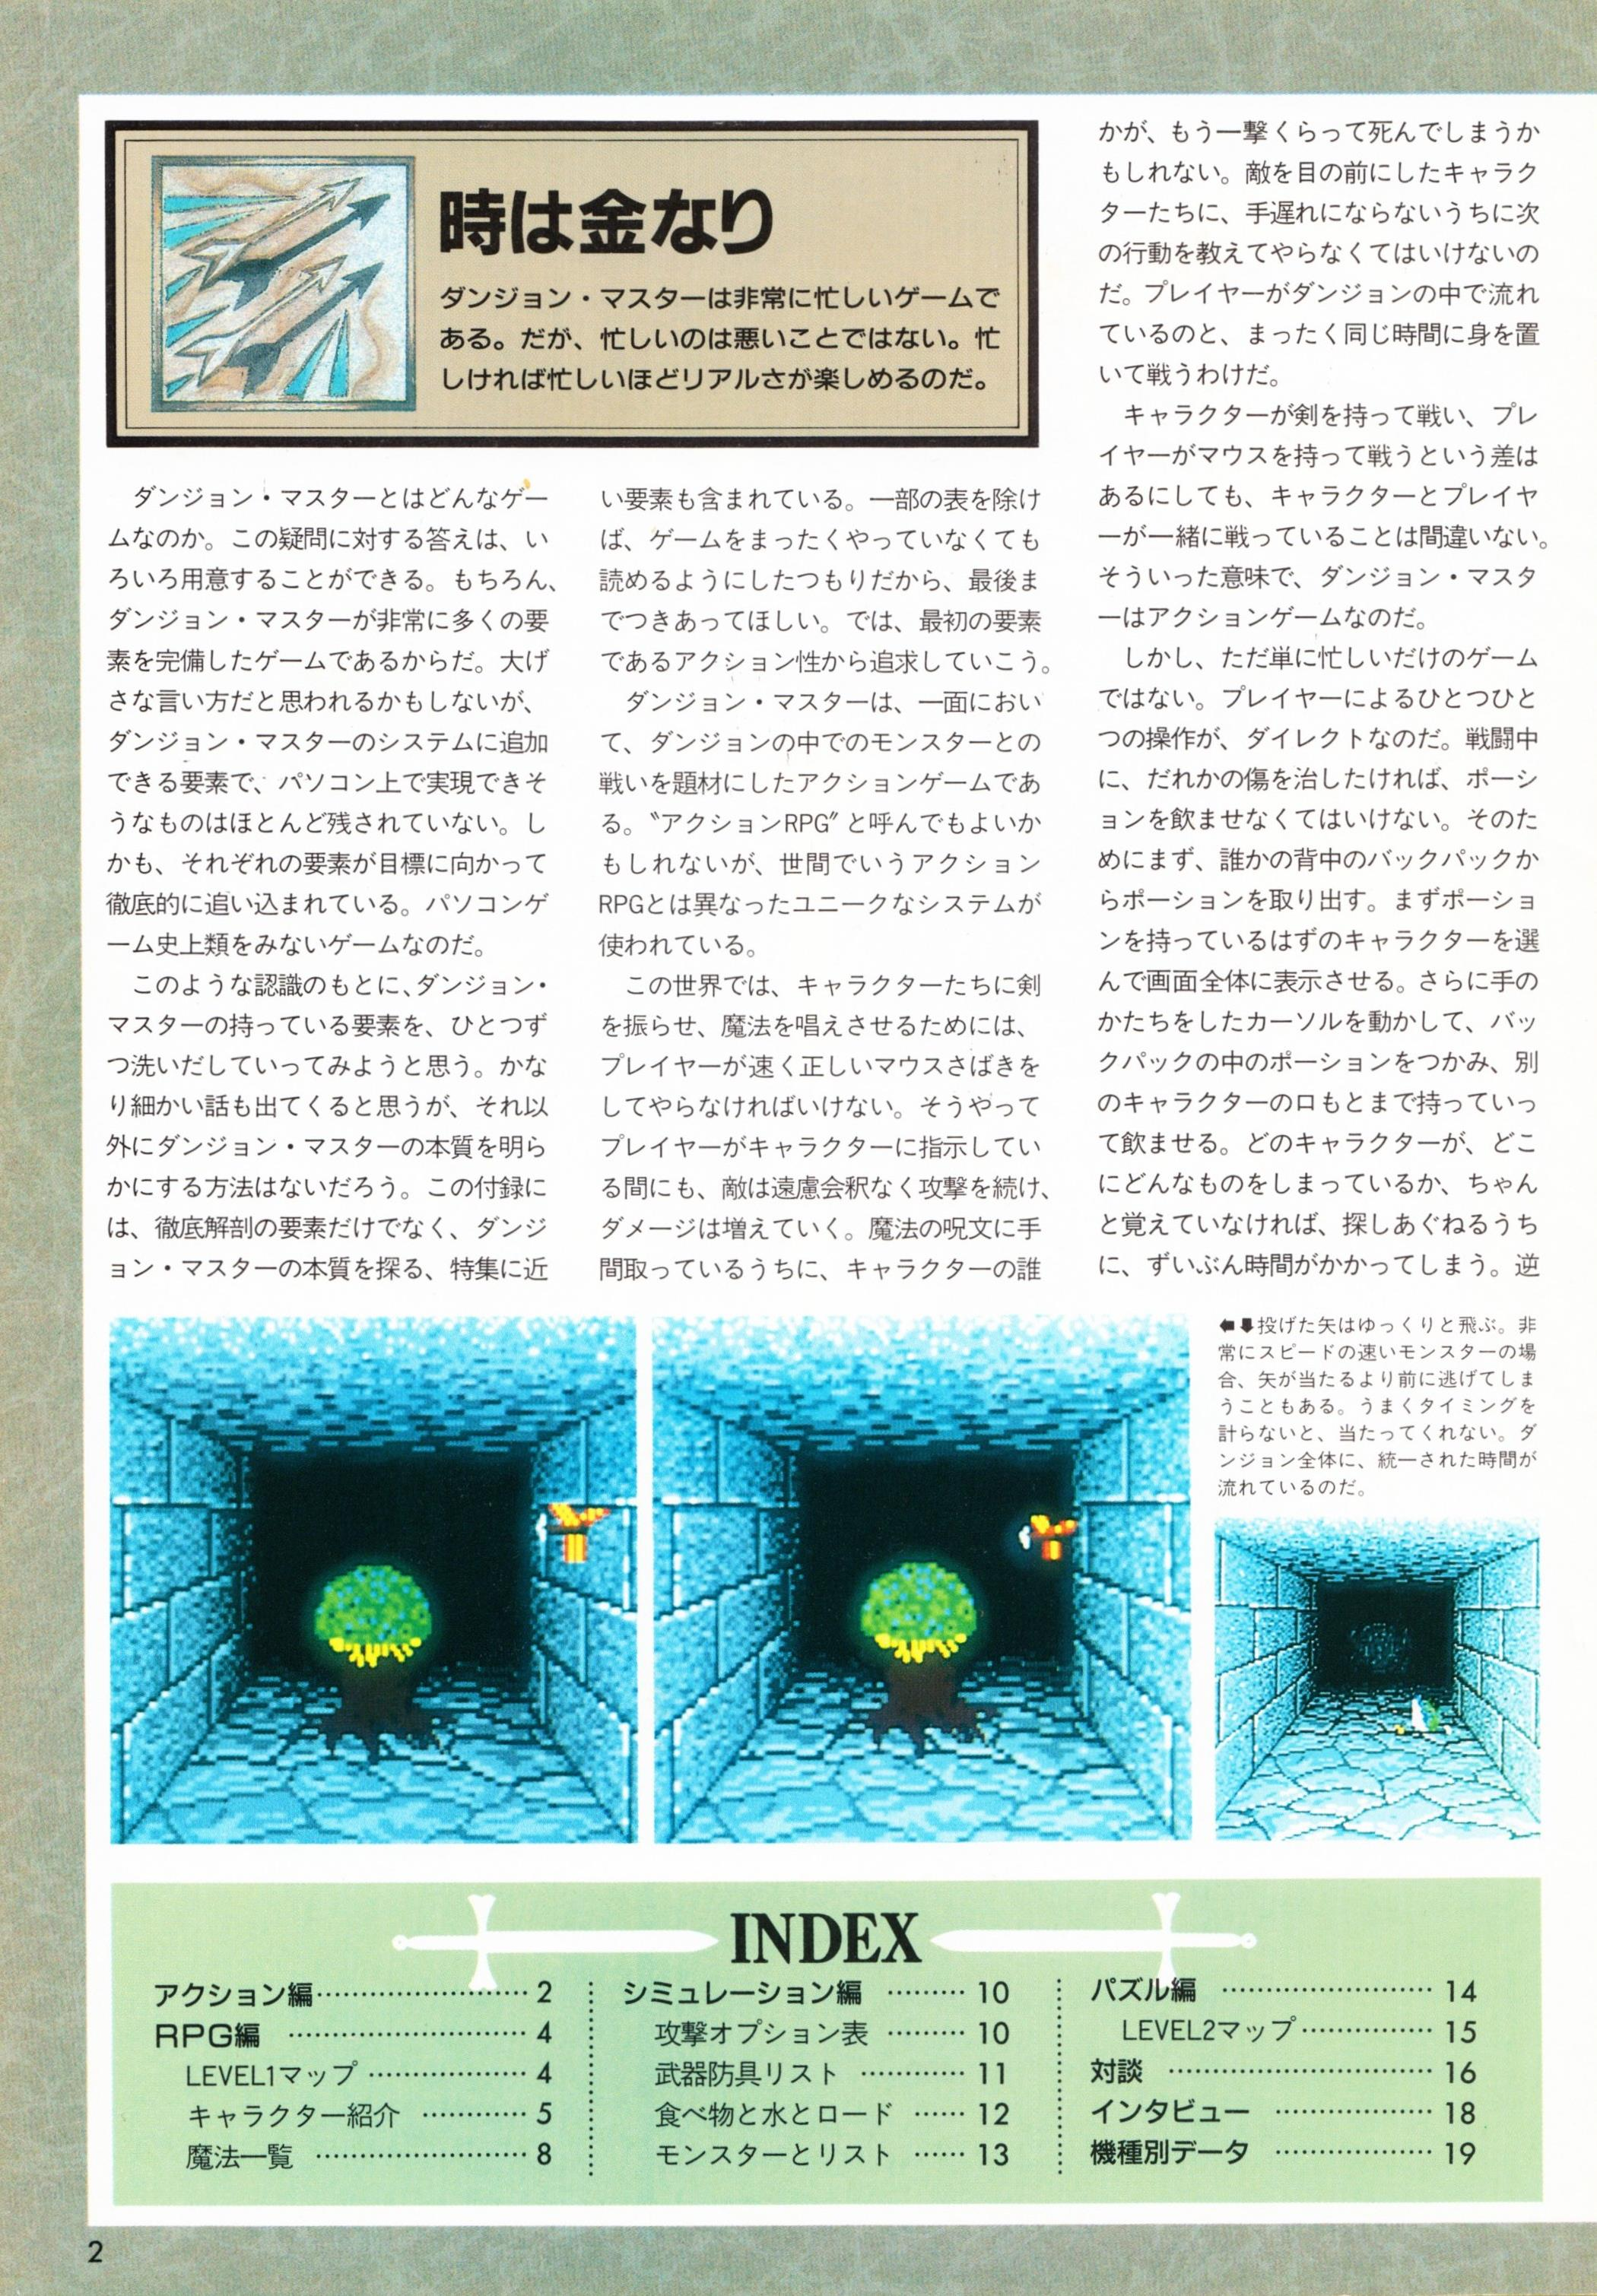 Special Supplement 2 - Dungeon Master Guide published in Japanese magazine 'Login', Vol 9 No 3 02 February 1990, Page 2